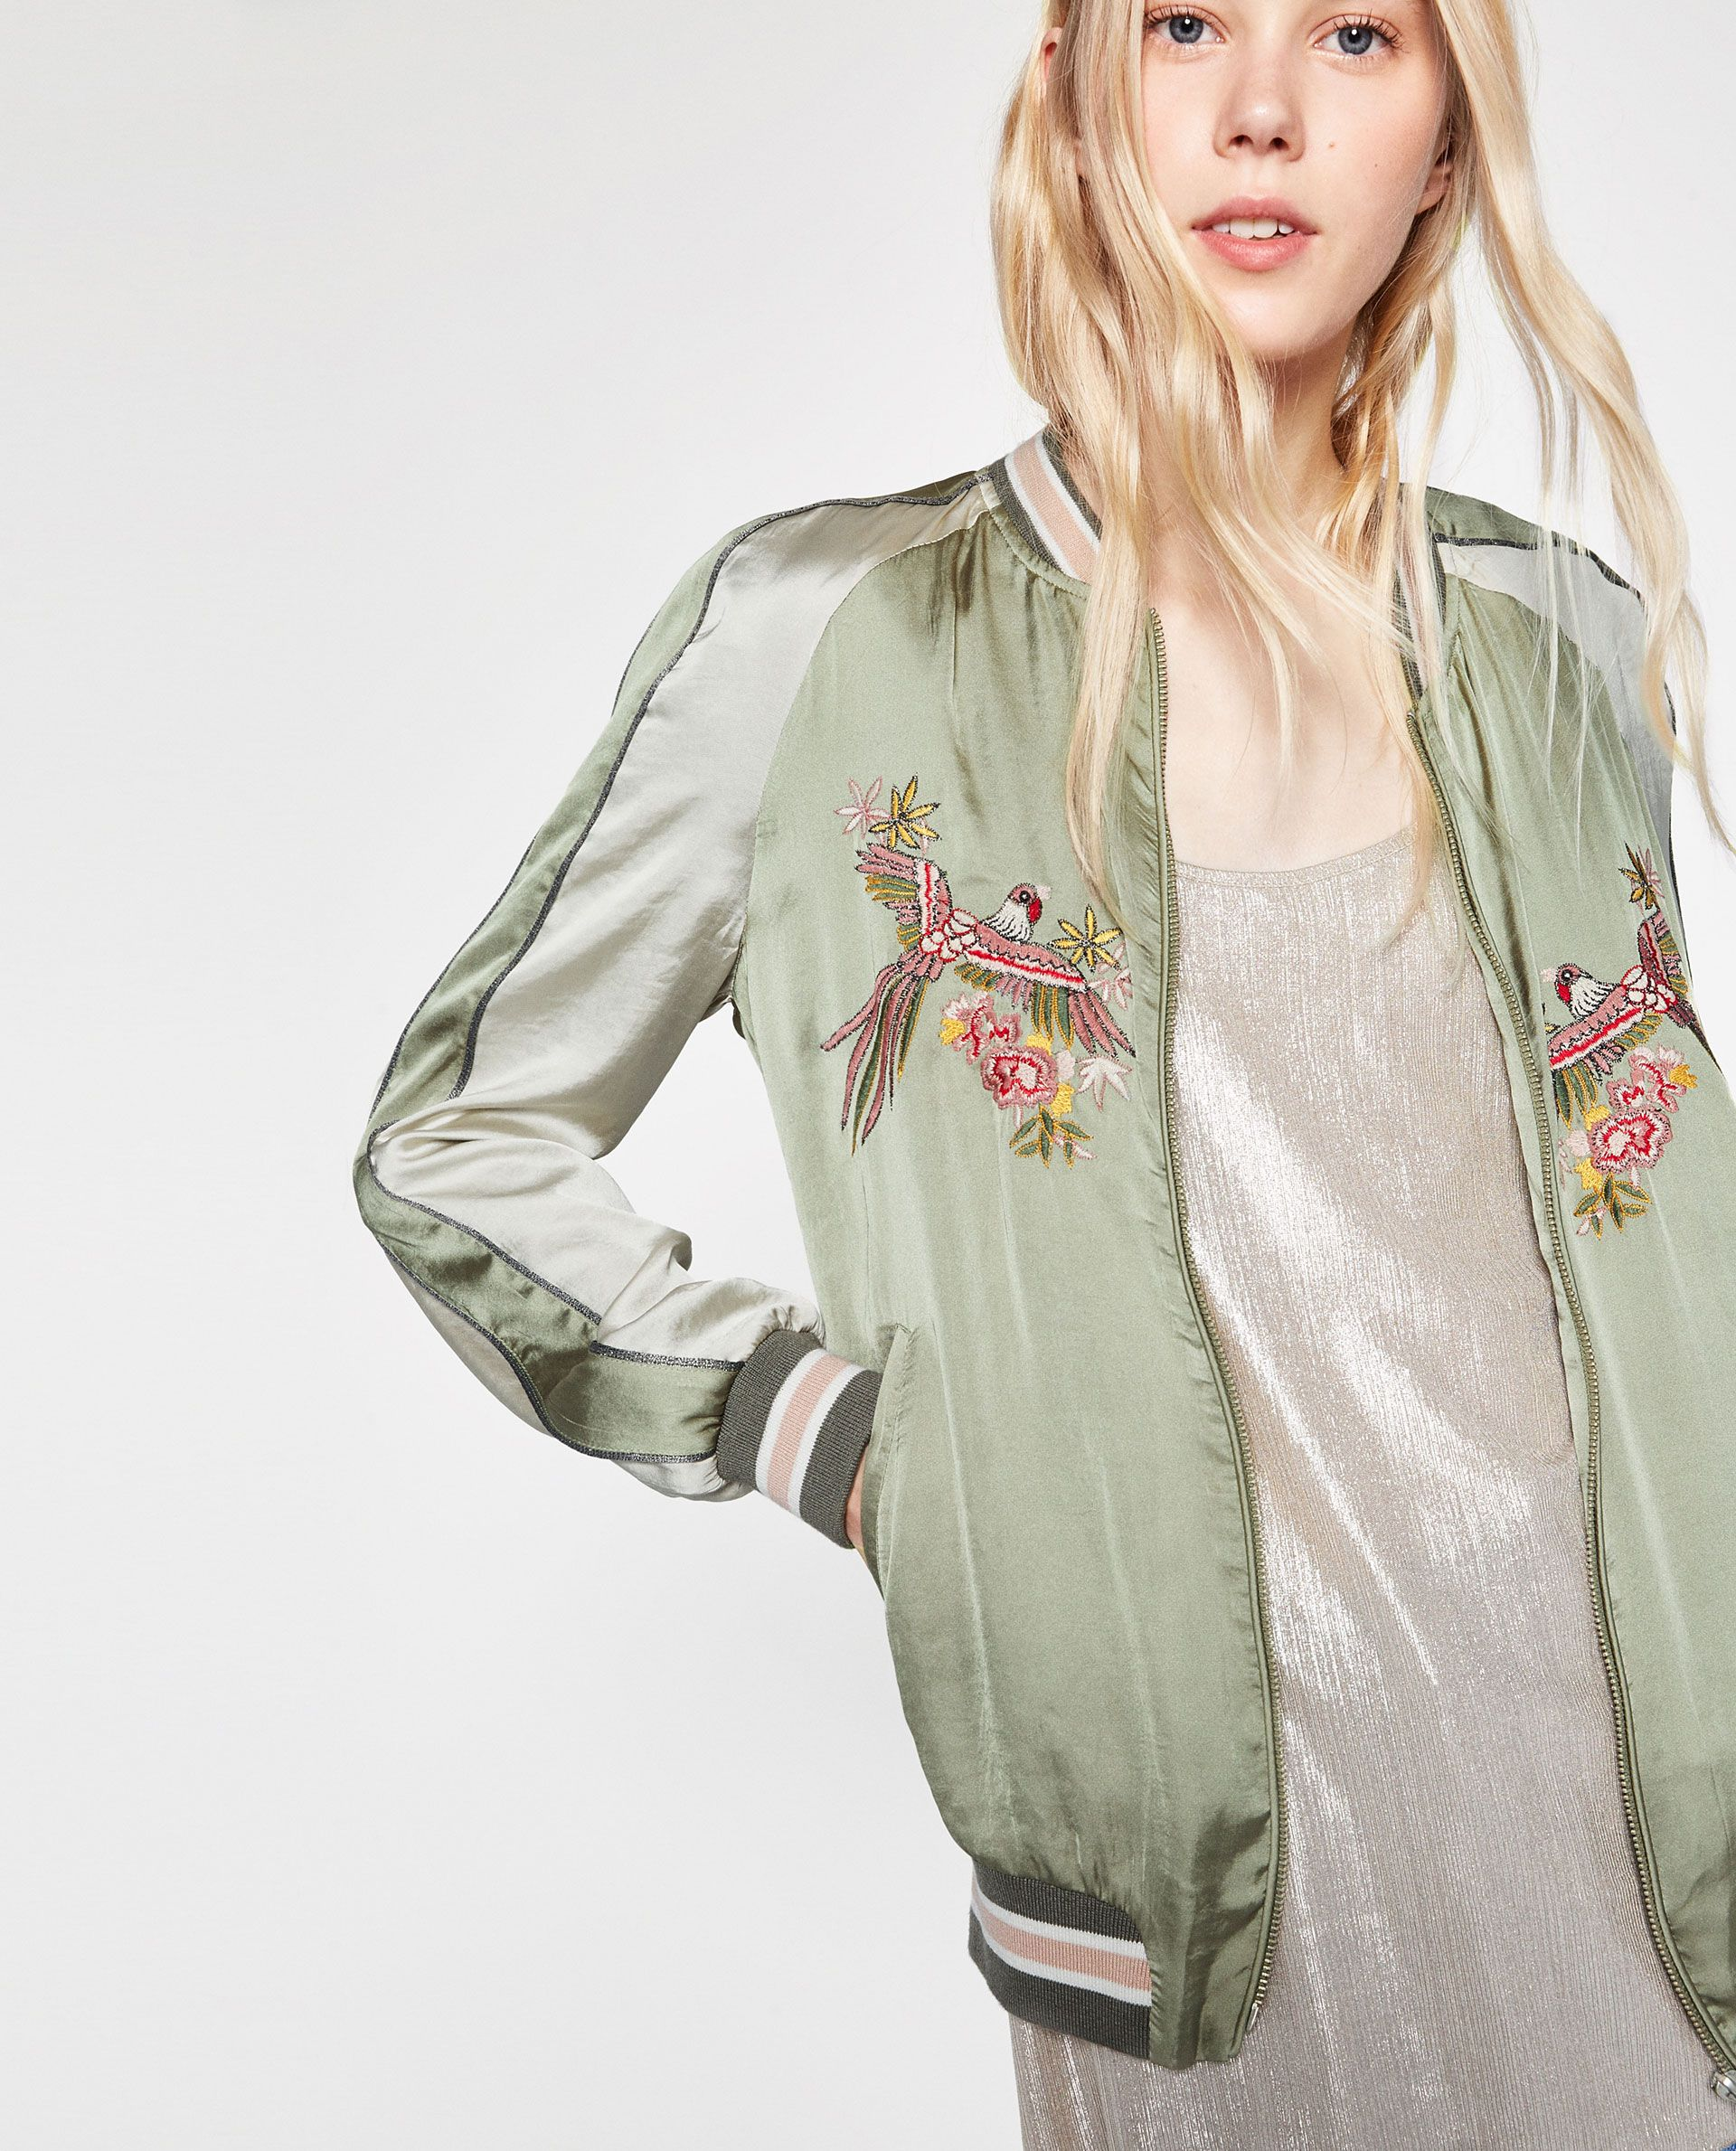 01bac2700 ZARA - WOMAN - BIRD EMBROIDERED BOMBER JACKET | Fashion 2016 ...